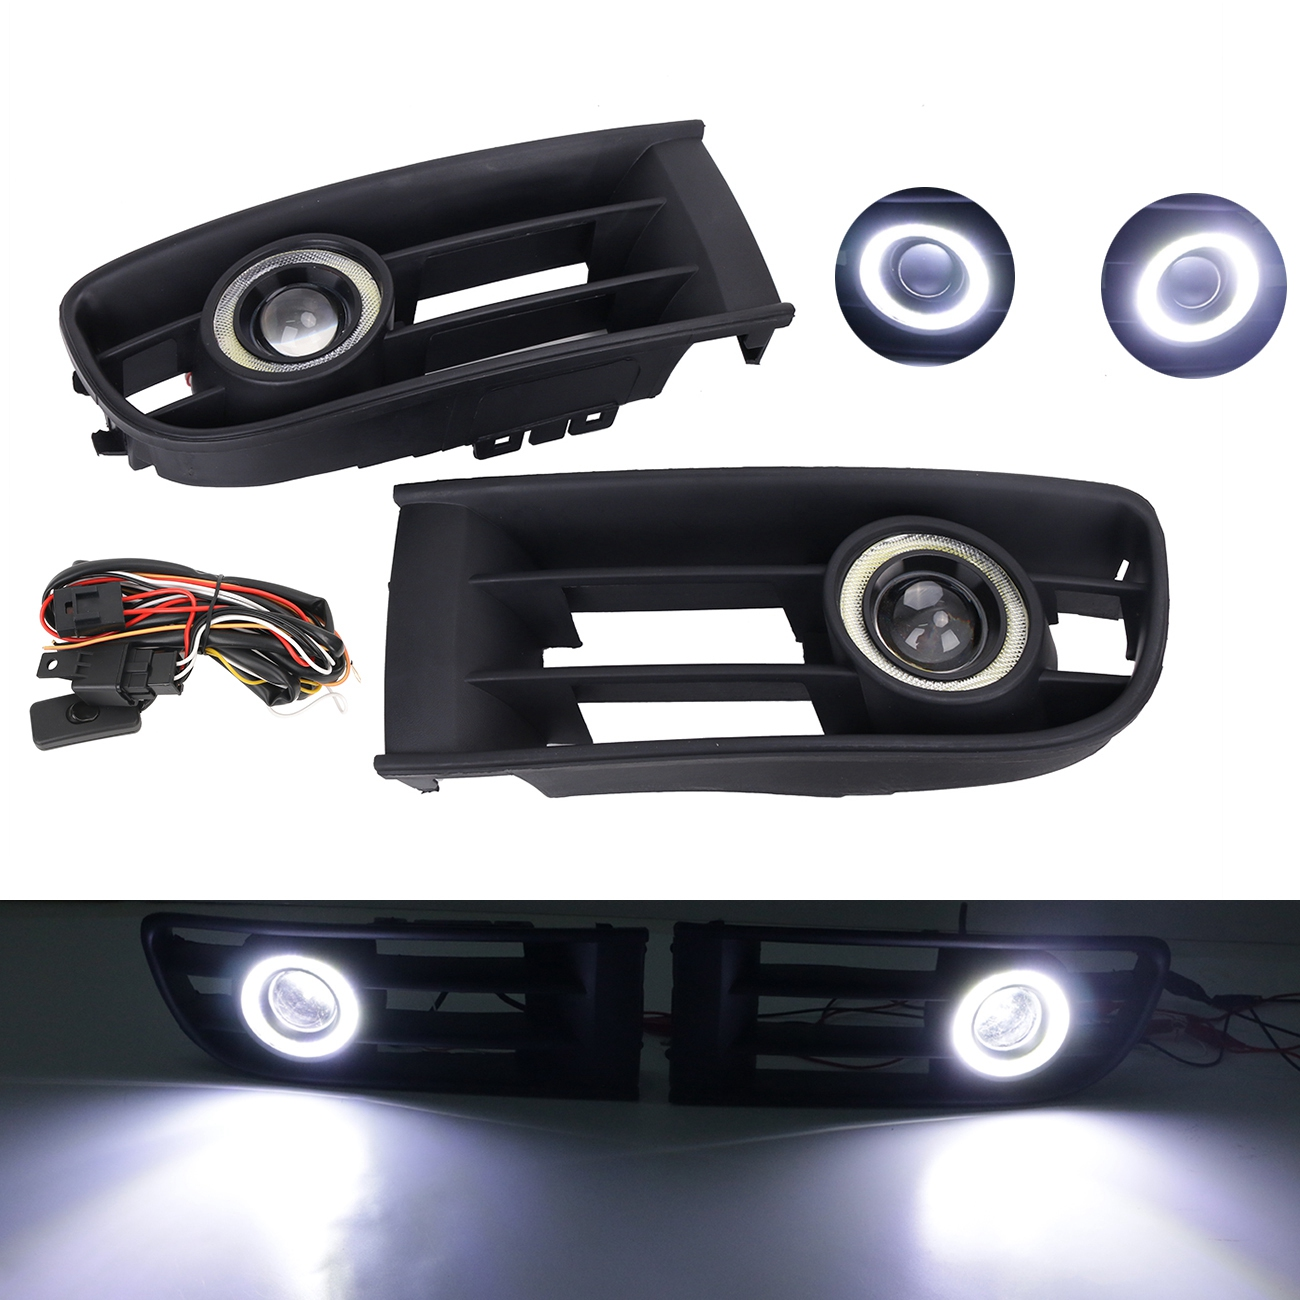 Front Bumper Fog Lamp Grille LED Convex lens Fog Light Angel Eyes For VW Polo 2001 2002 2003 2004 2005 DRL Car Accessory #P364 подарочный набор посуды пеппа принцесса peppa pig